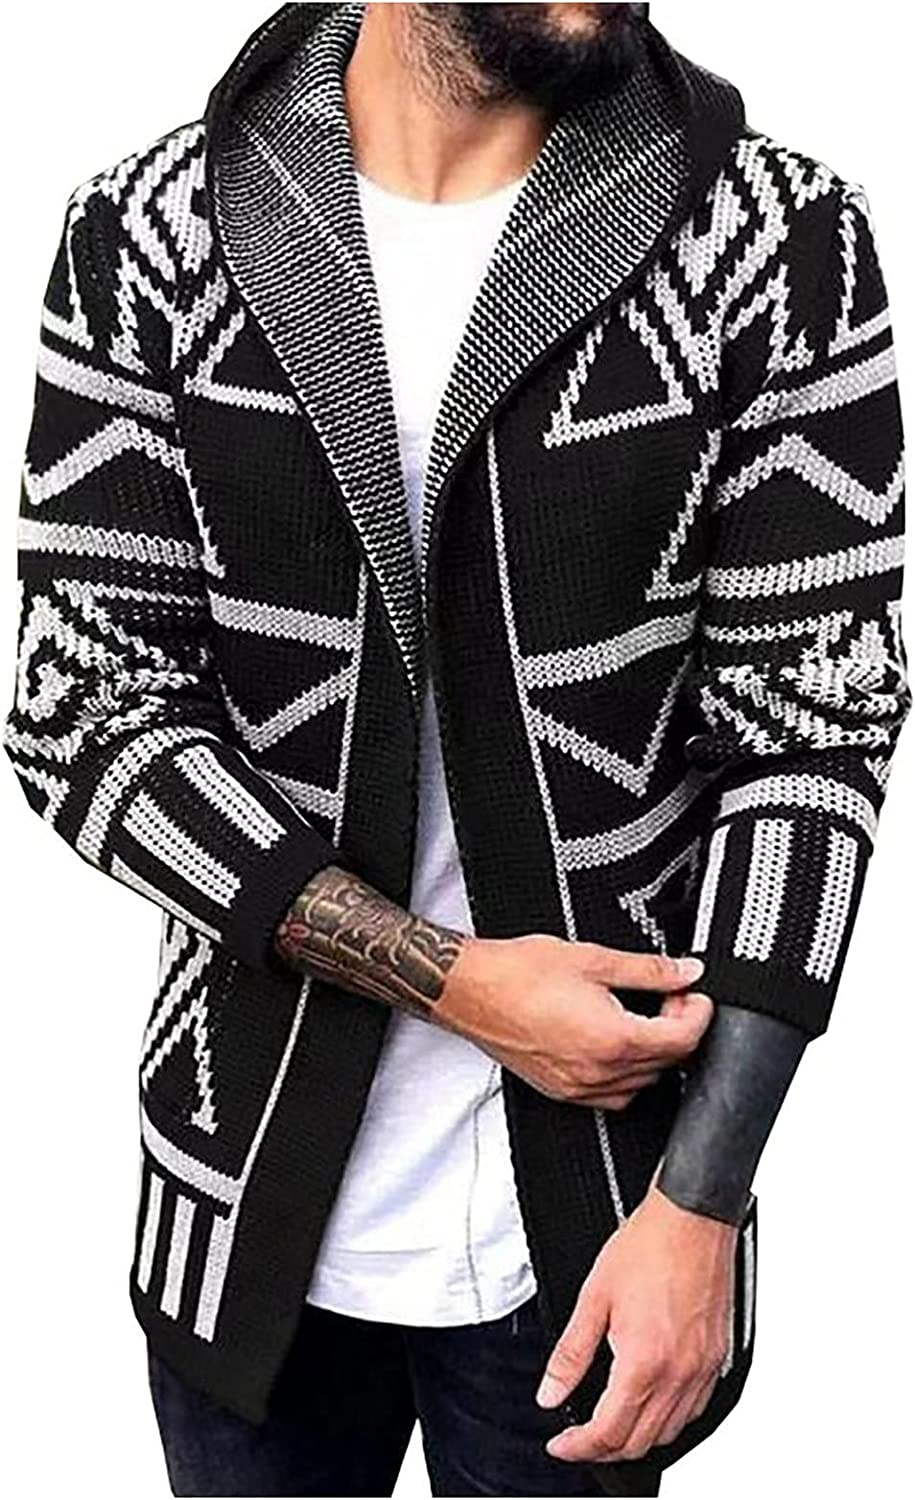 Huangse Men's Long Sleeve Draped Lightweight Open Front Hooded Cardigan Wool Plaid Trench Coat with Hood Knit Long Cardigan